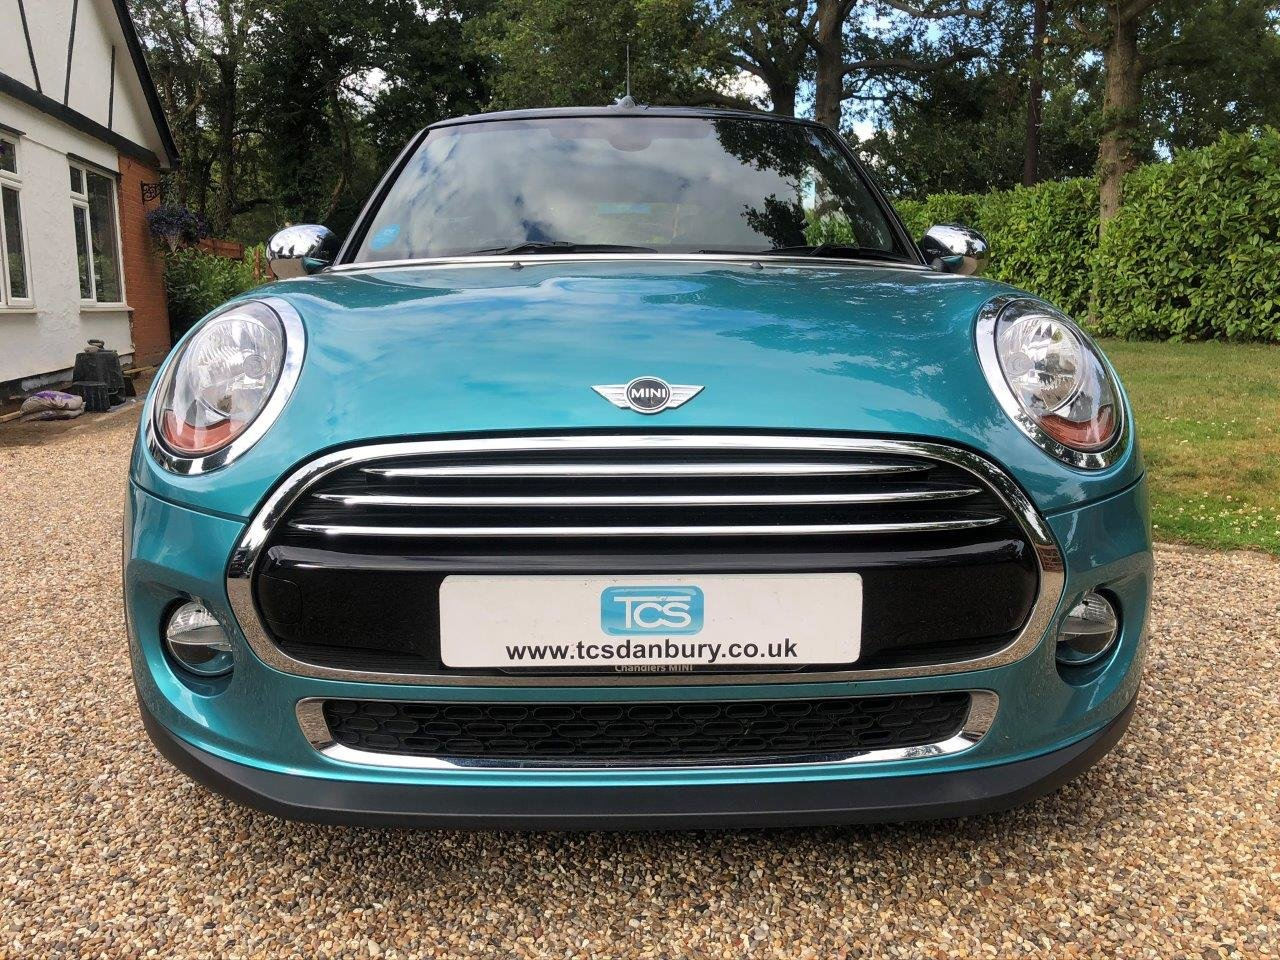 2018 MINI Cooper Convertible 1.5i Turbo 134bhp 6-Speed Manual SOLD (picture 4 of 6)